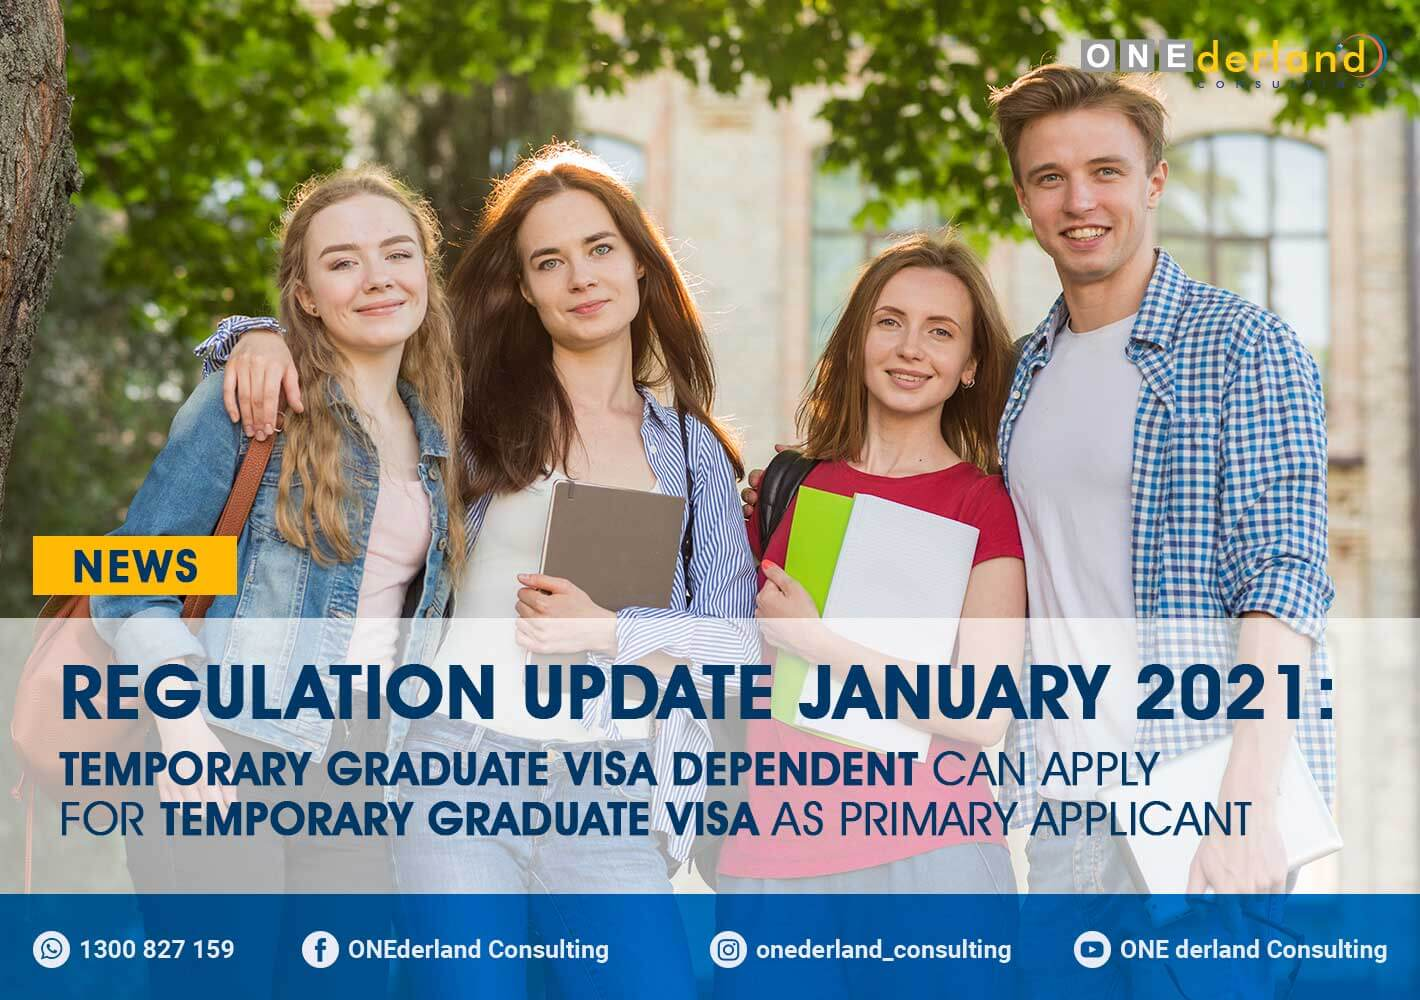 Graduate Visa Regulation Update – Dependent Graduate Visa Holders May Apply As A Primary Applicant